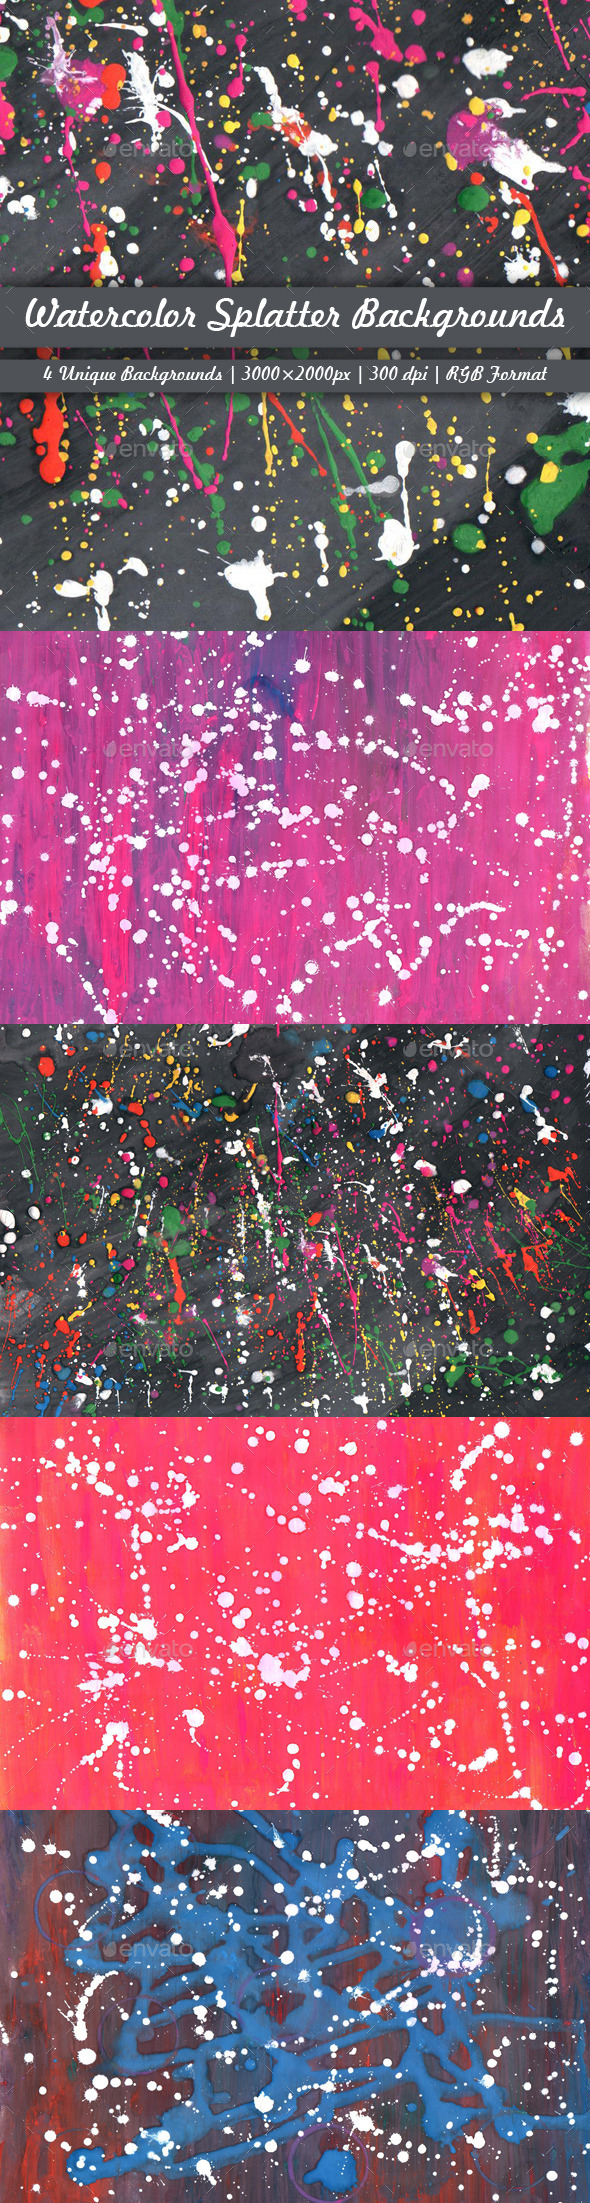 GraphicRiver Watercolor Splatter Backgrounds 11473455